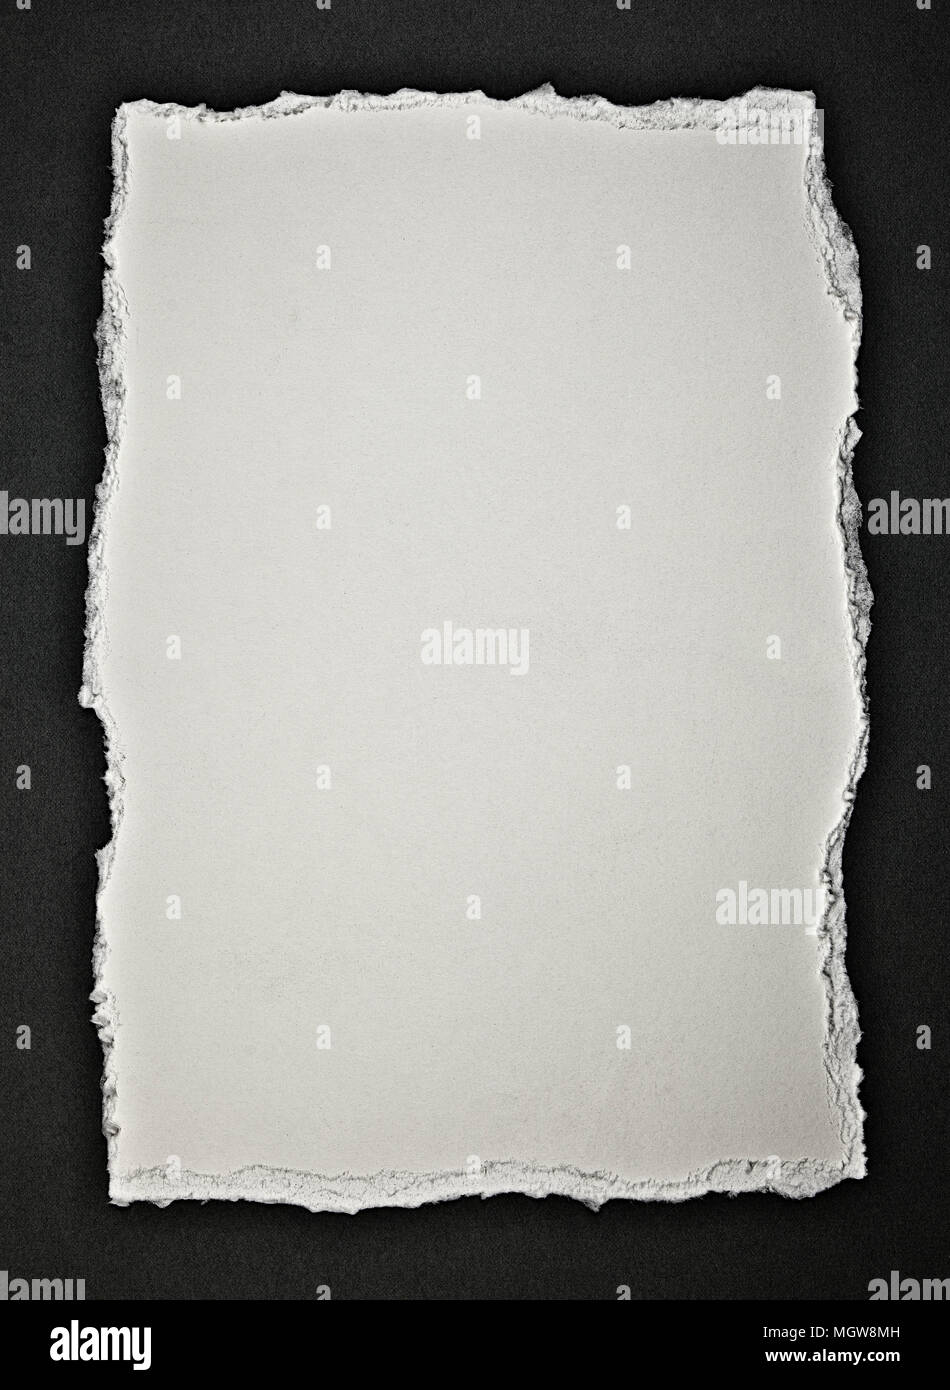 Torn paper. - Stock Image